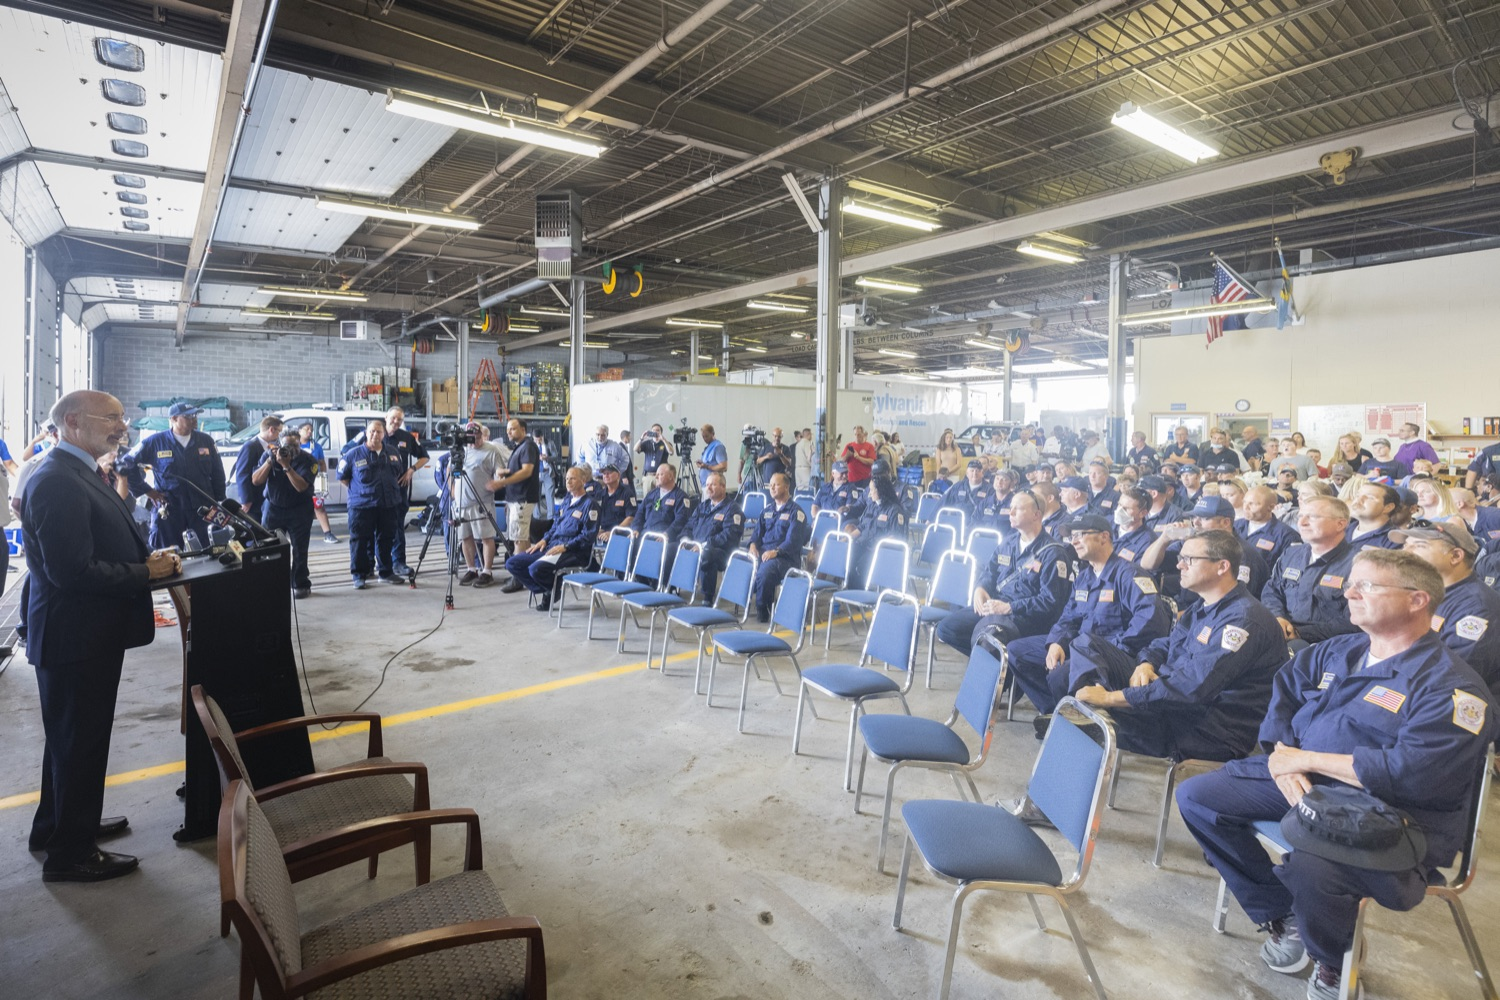 """<a href=""""https://filesource.wostreaming.net/commonwealthofpa/photo/18936_gov_taskforceone_dz_022.jpg"""" target=""""_blank"""">⇣Download Photo<br></a>Governor Tom Wolf speaking to returning Pennsylvania-Task Force 1. Members.Governor Tom Wolf thanked members of Pennsylvania-Task Force 1 (PA- TF1), who returned today to Philadelphia after spending two weeks assisting with search and rescue efforts at the site of the recent deadly building collapse in Surfside, Florida.  Philadelphia, Pa.  July 16, 2021"""